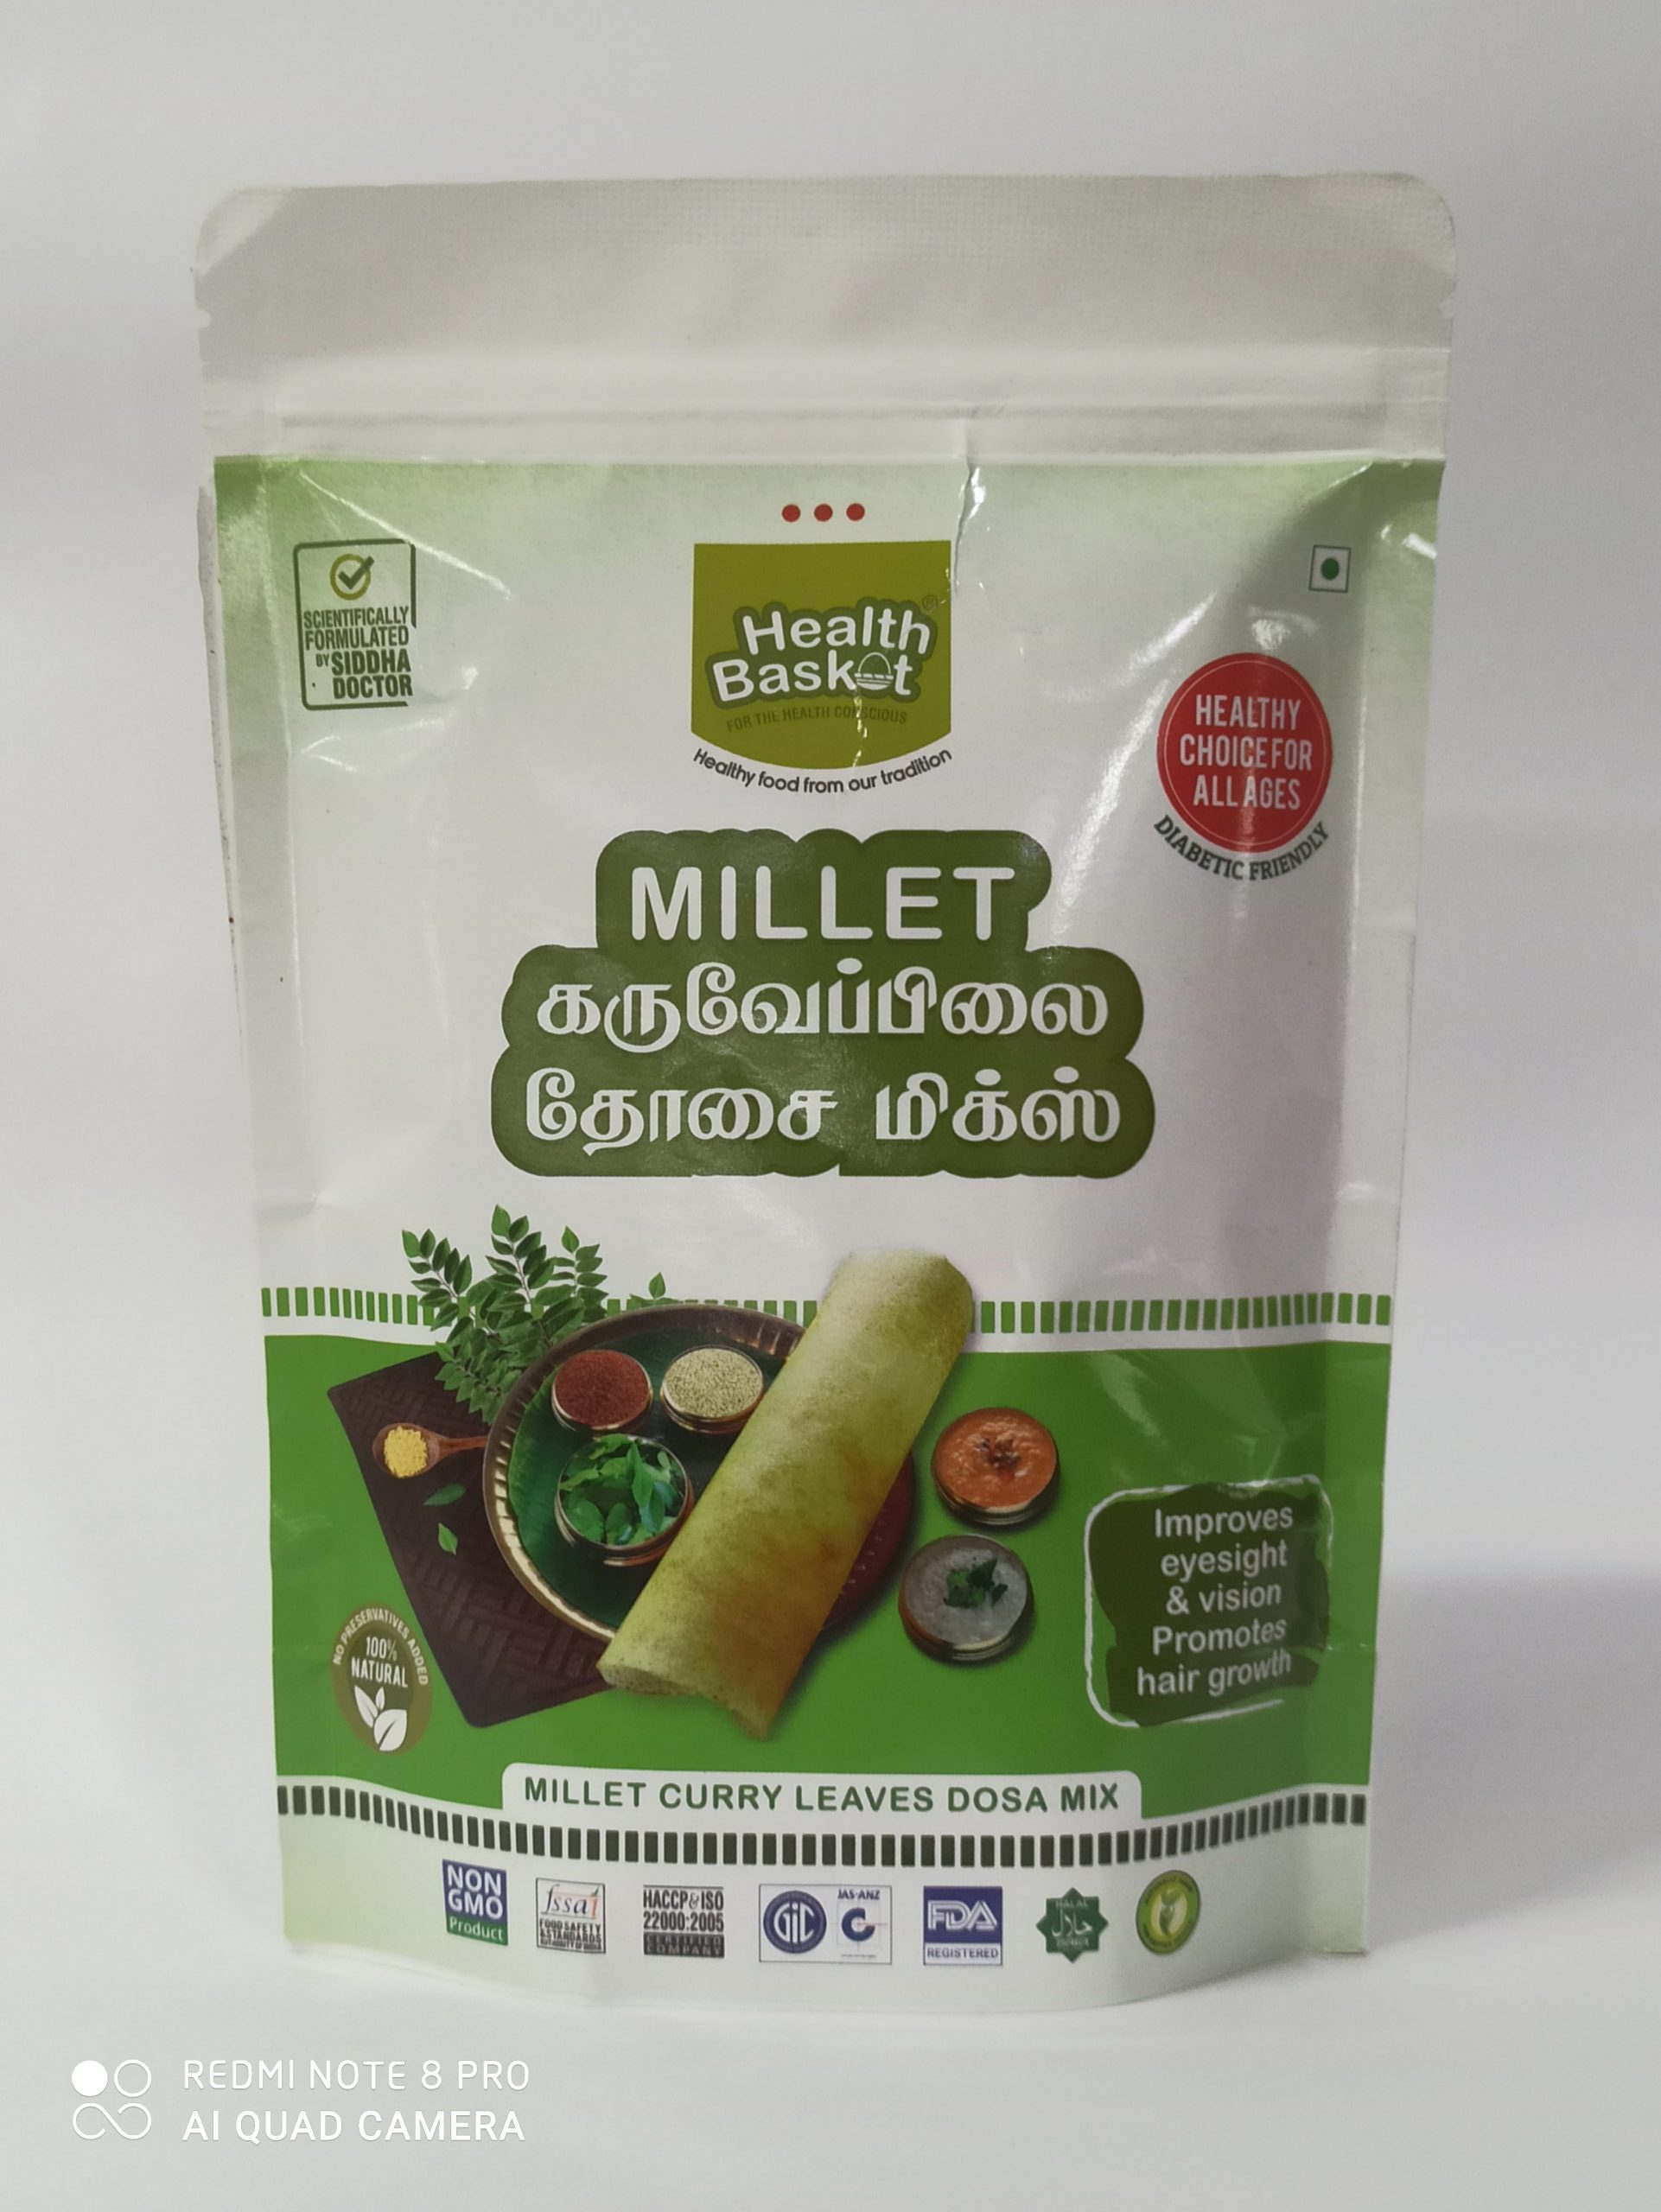 HEALTH BASKET MILLET CURRY LEAVES DOSA MIX 500GM